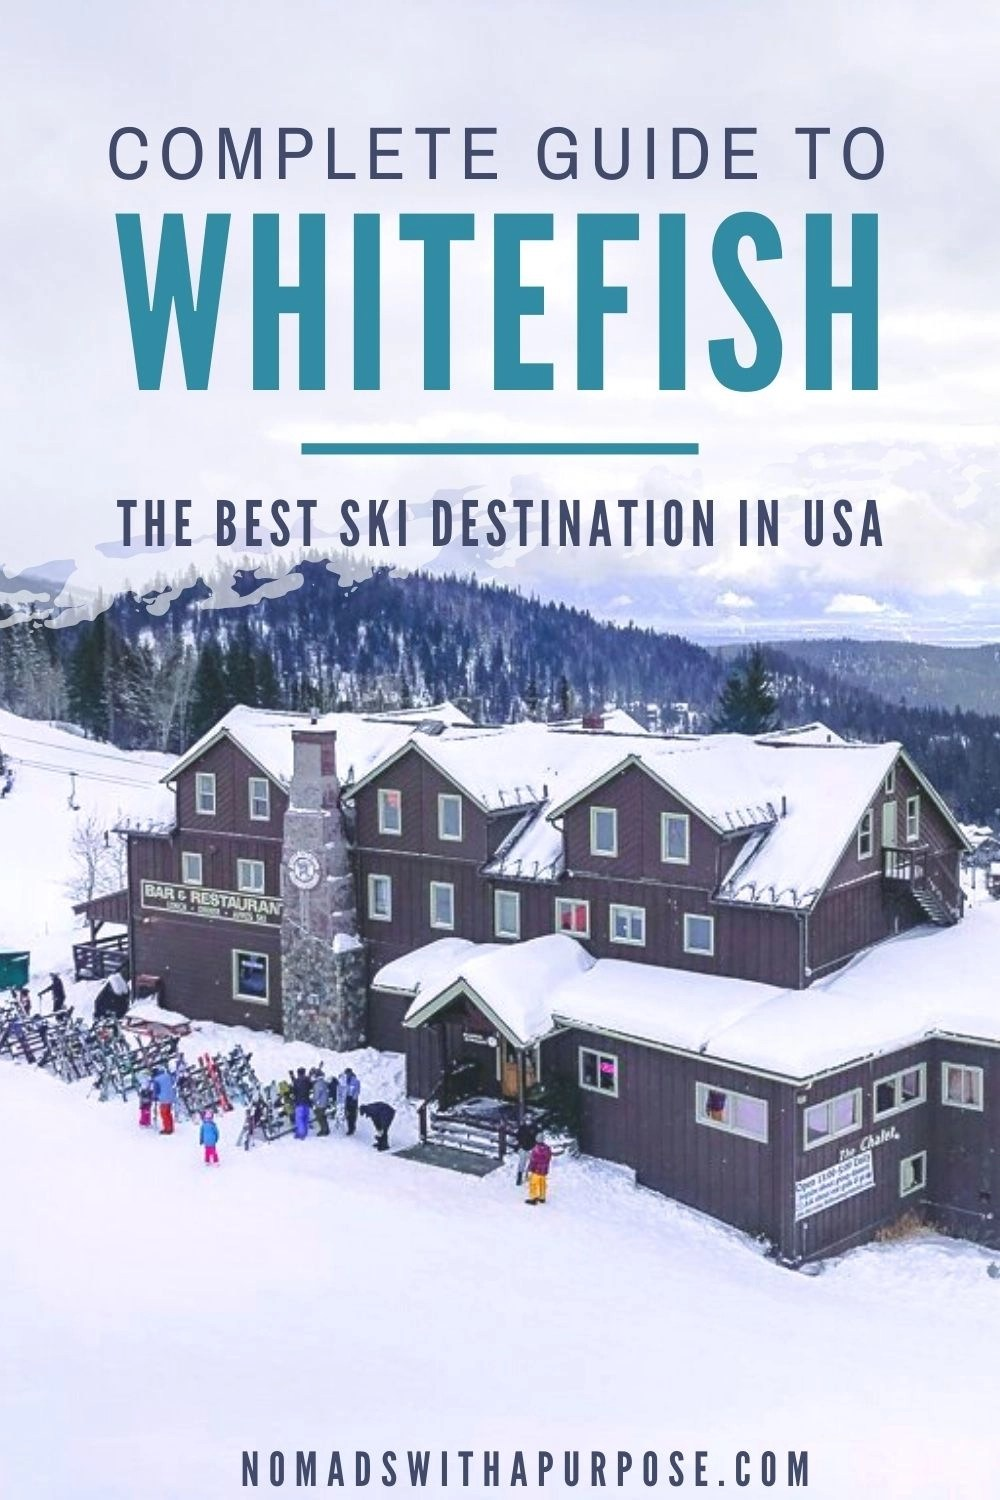 Complete Guide To Whitefish the Best Ski Destination